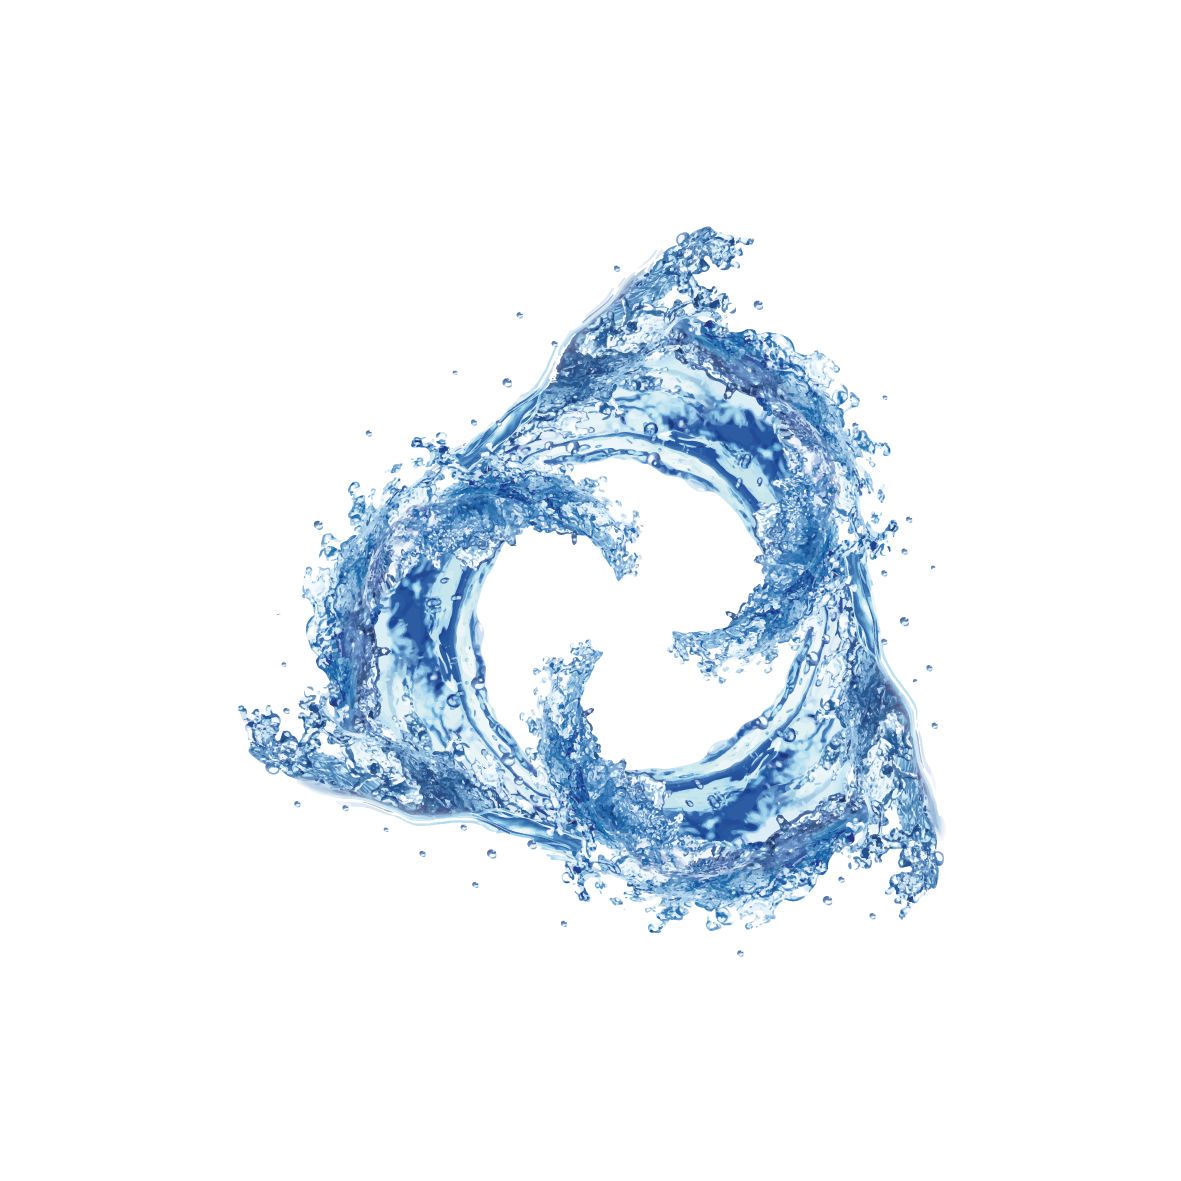 Vortex drawing blue water. Dispersion whirlpool illustration creative